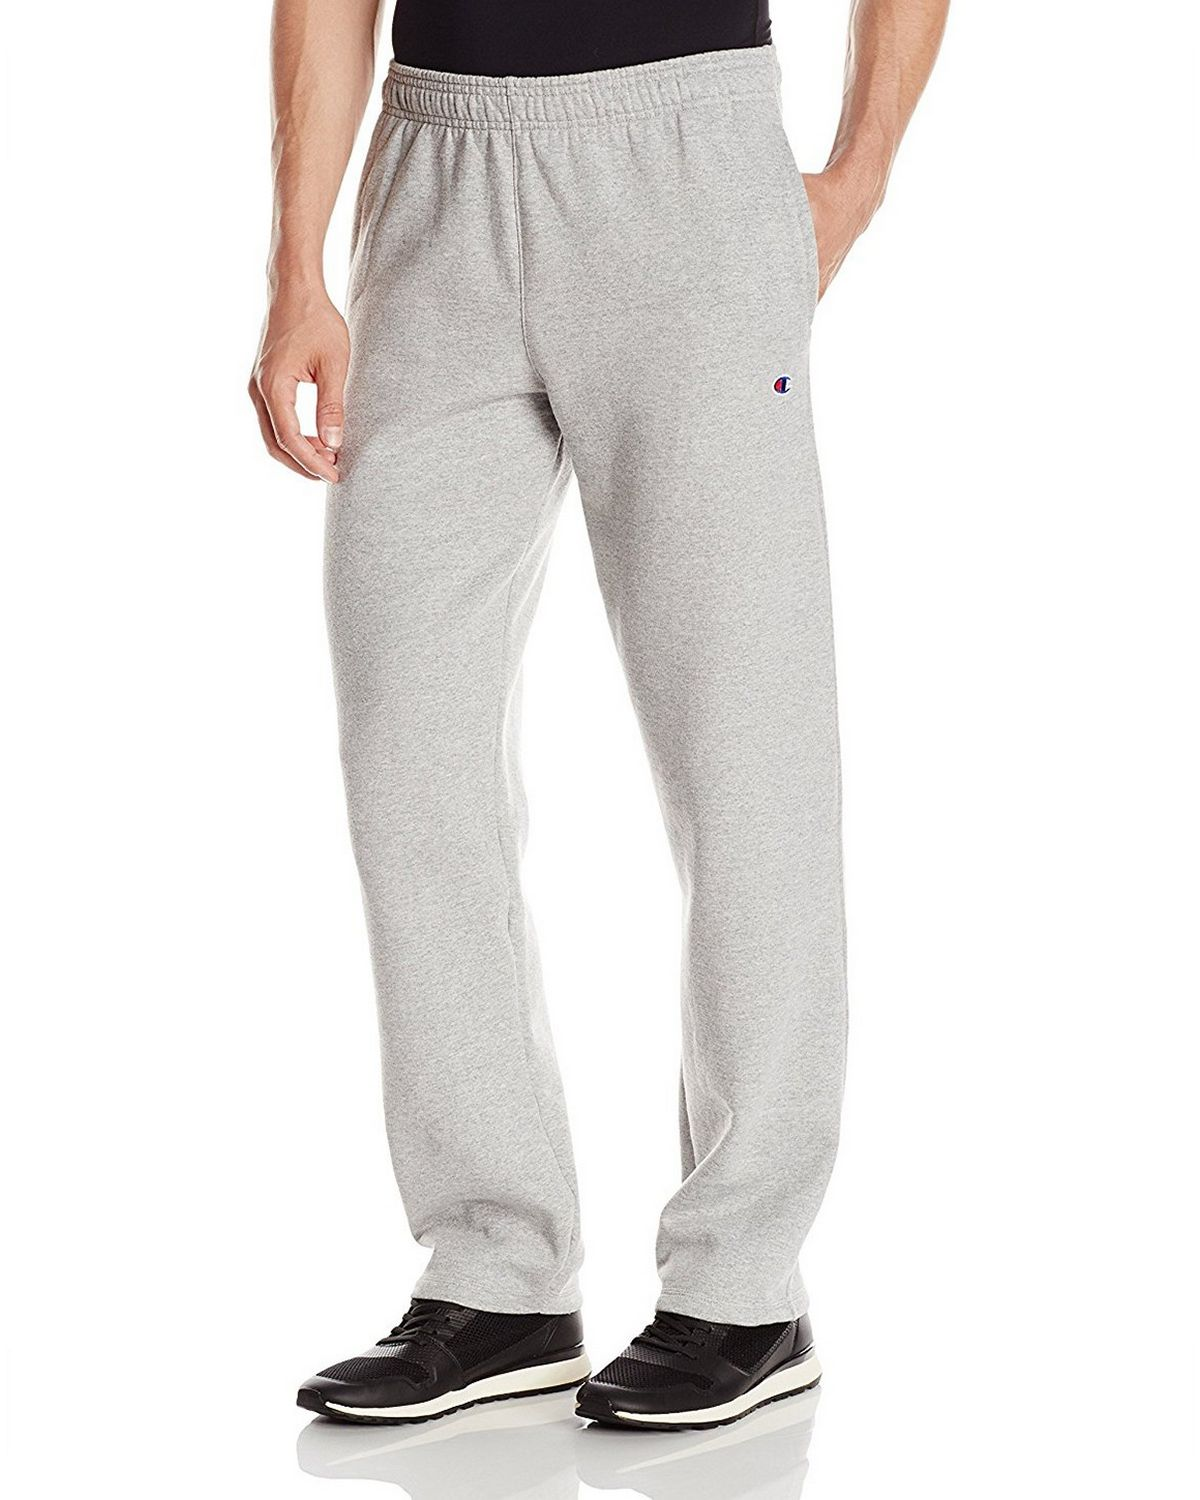 Champion P0893 Mens Fleece Open Bottom Pants - Black - L P0893